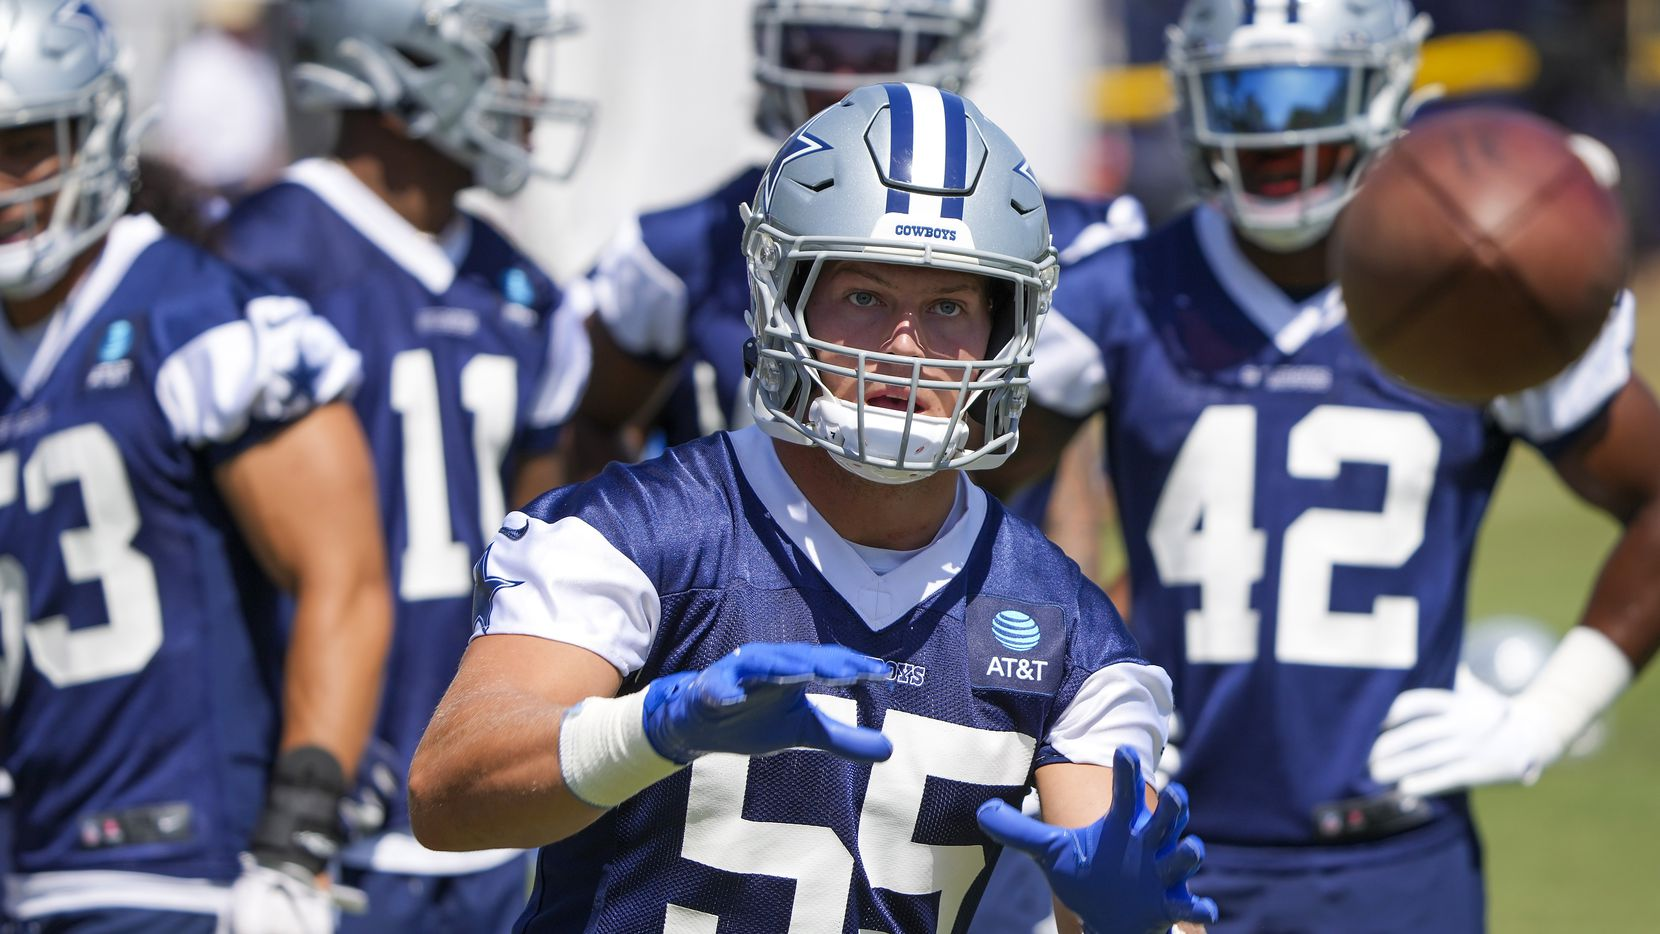 Dallas Cowboys linebacker Leighton Vander Esch (55) catches a ball during the first practice of the team's training camp on Thursday, July 22, 2021, in Oxnard, Calif.